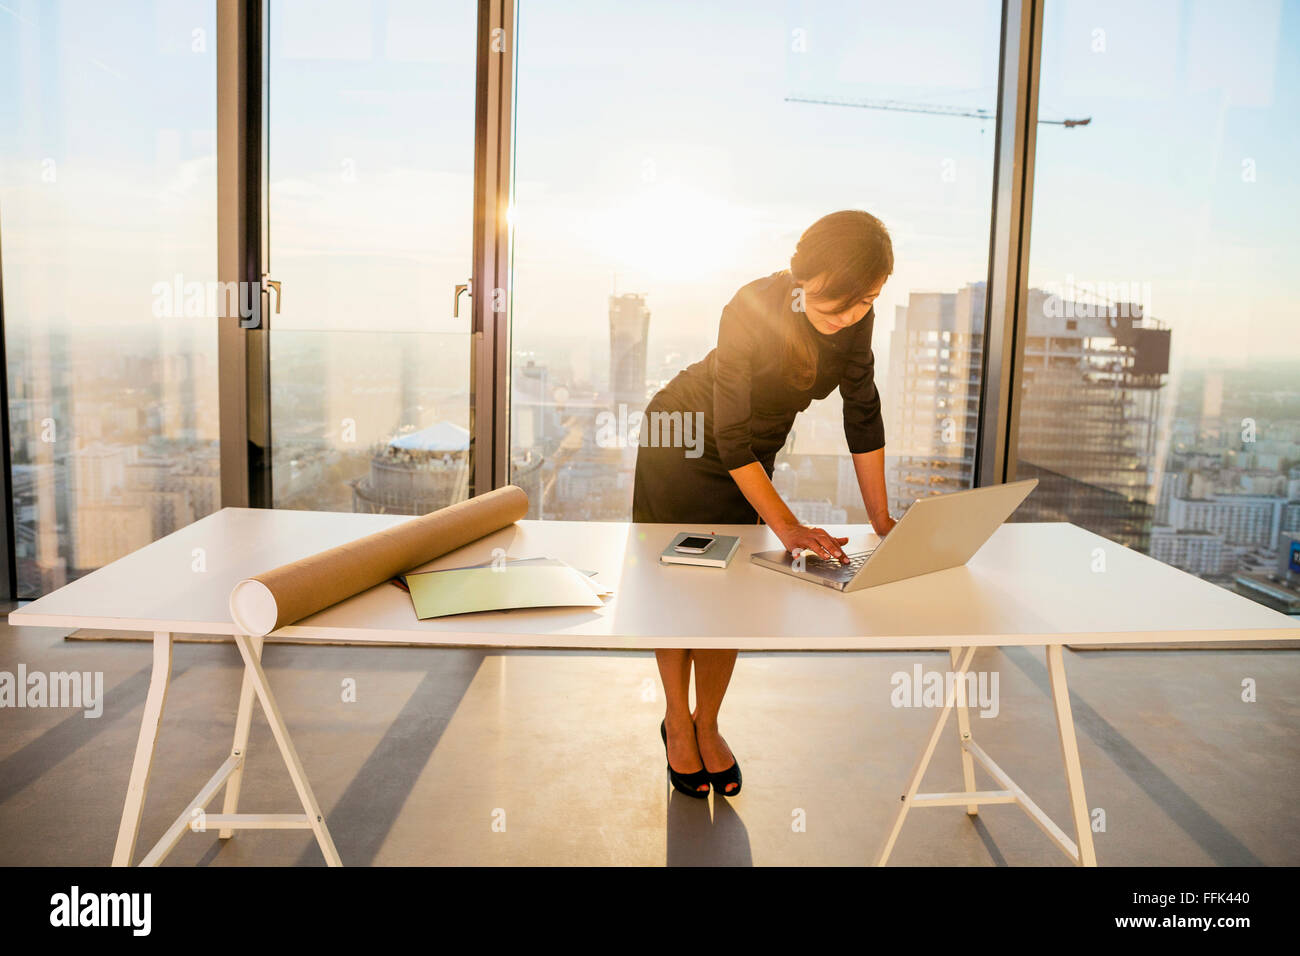 Female architect in office working on laptop - Stock Image